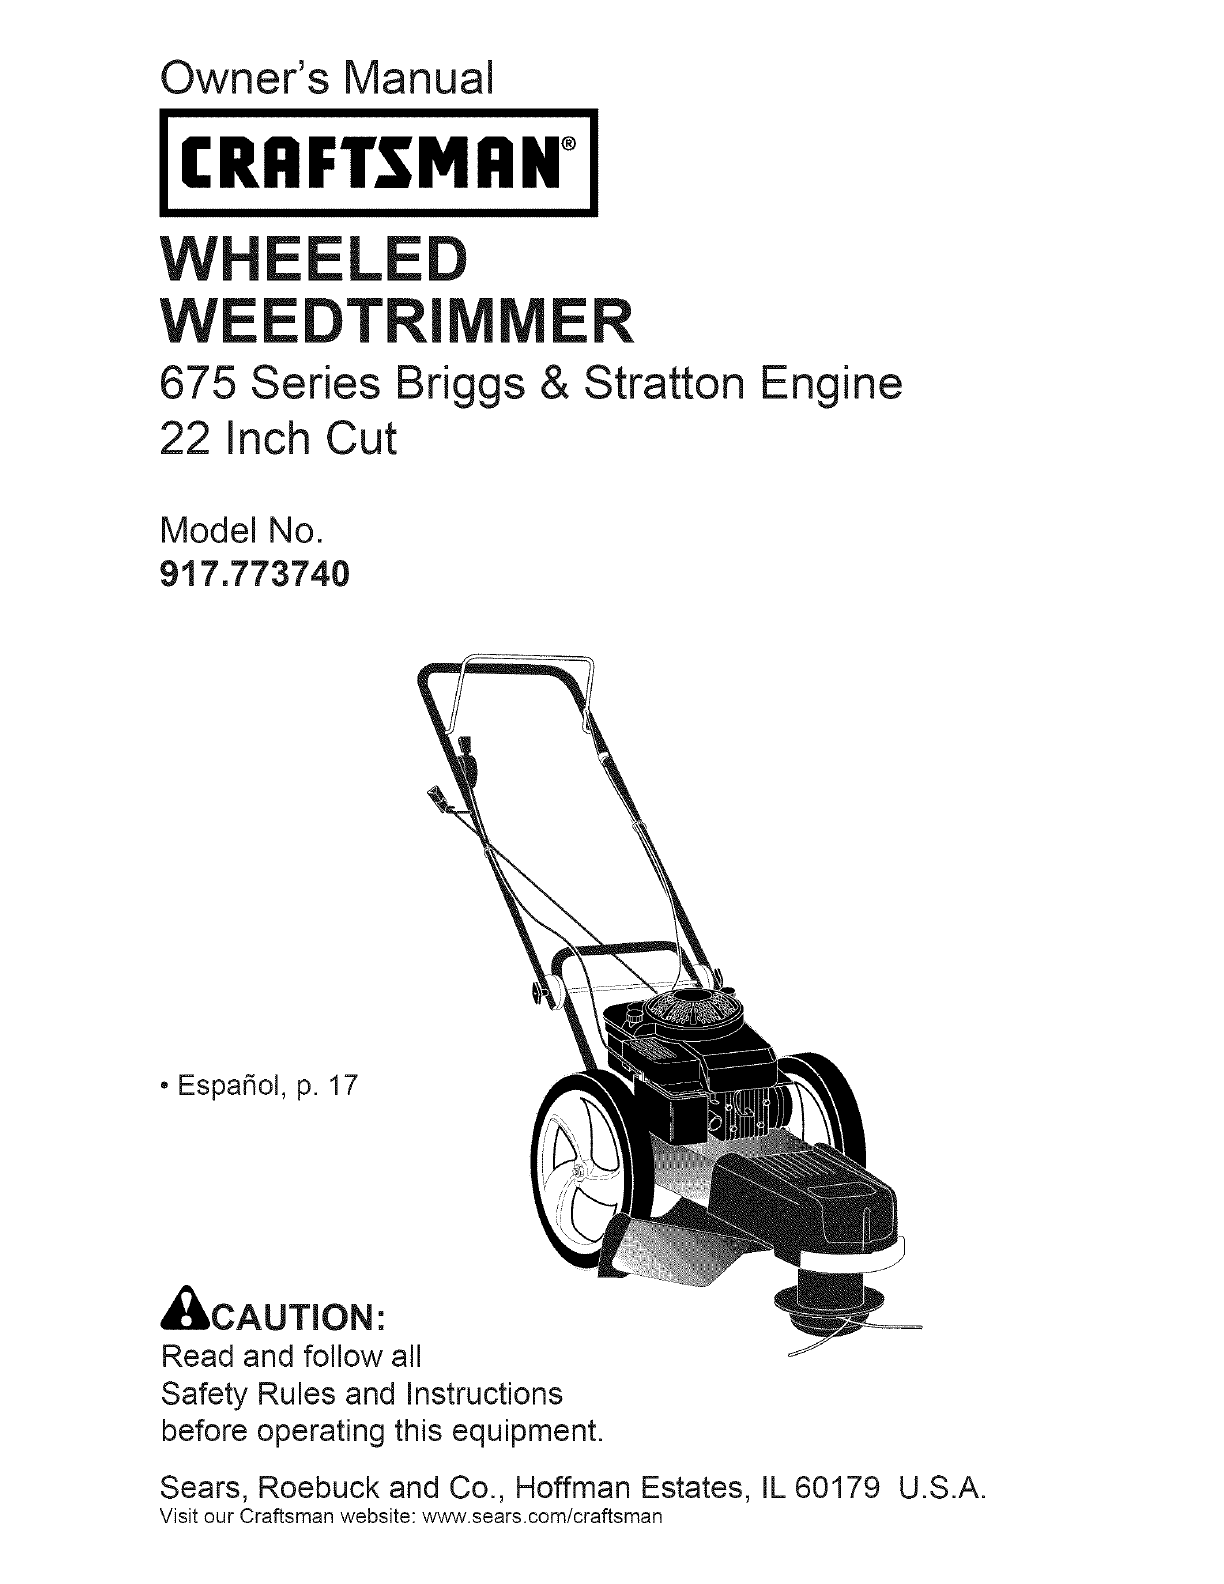 Craftsman 675 Series Lawn Mower Manual Arsenal Top Goal Scorers 190cc Engine Diagram Rotary 54 24 Hp V Twin Briggs Stratton Hydrostatic Riding W 30 420cc 6 Speed